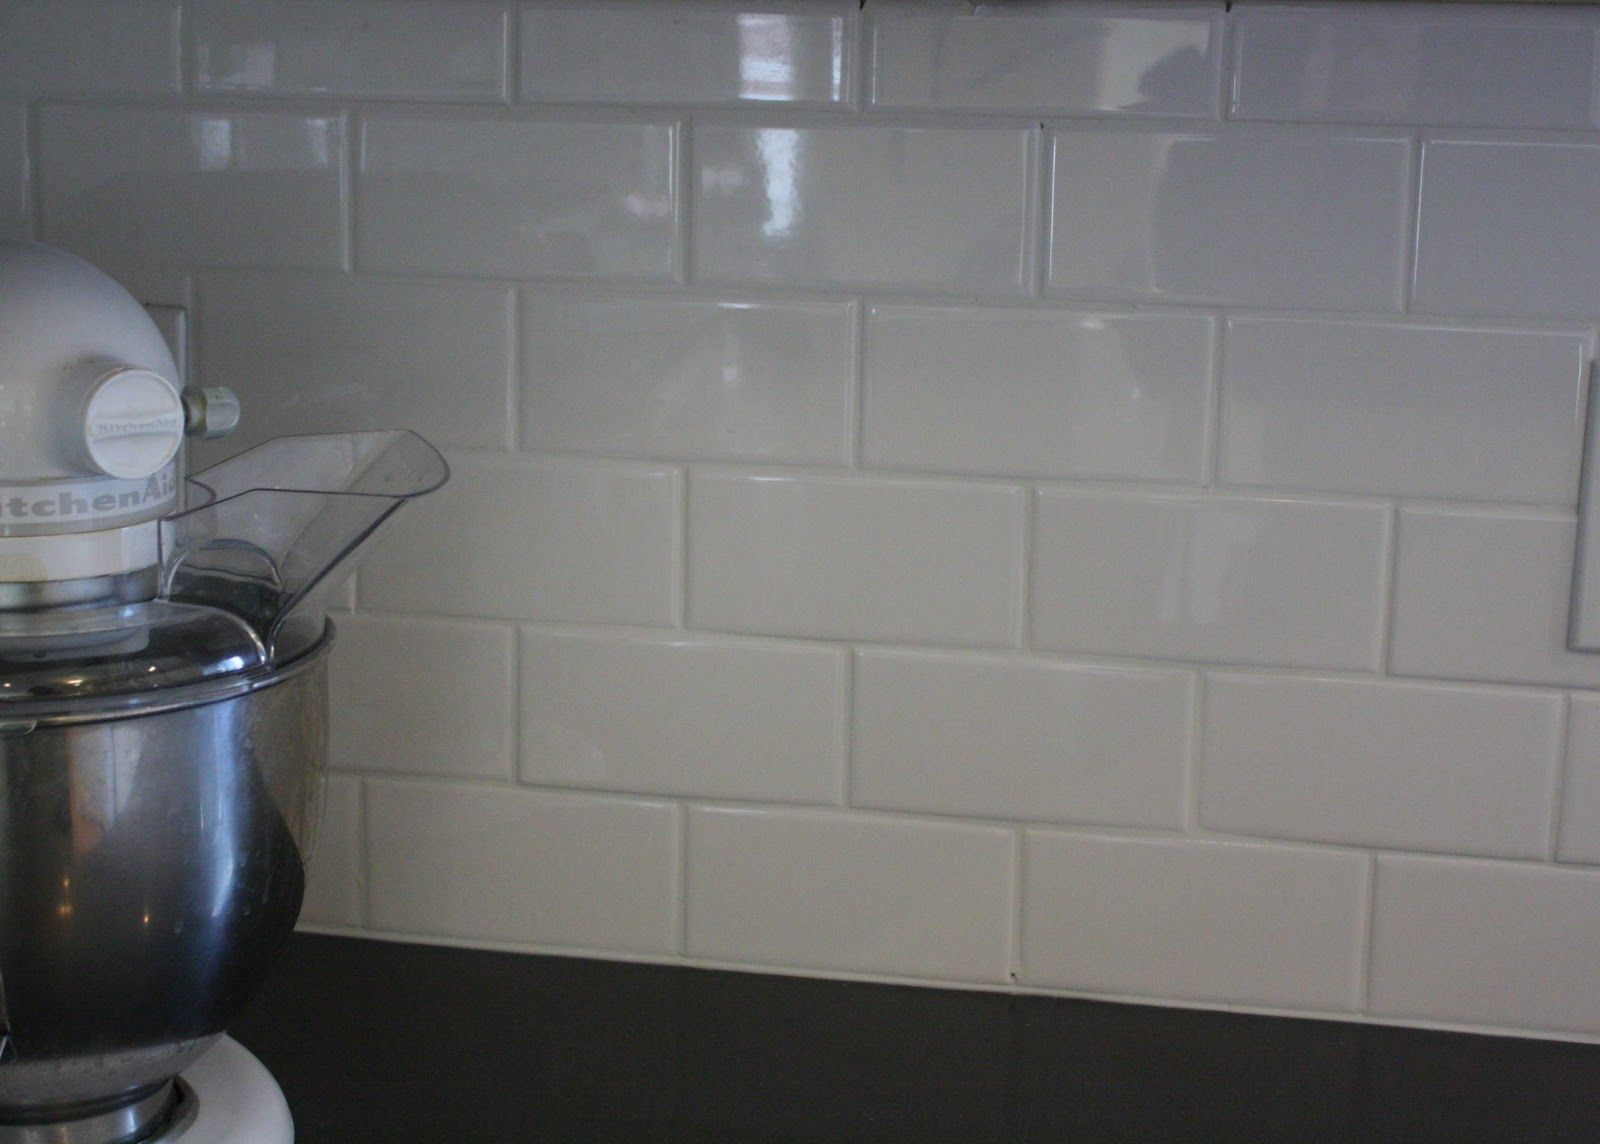 Grouting Tile Backsplash In Kitchen